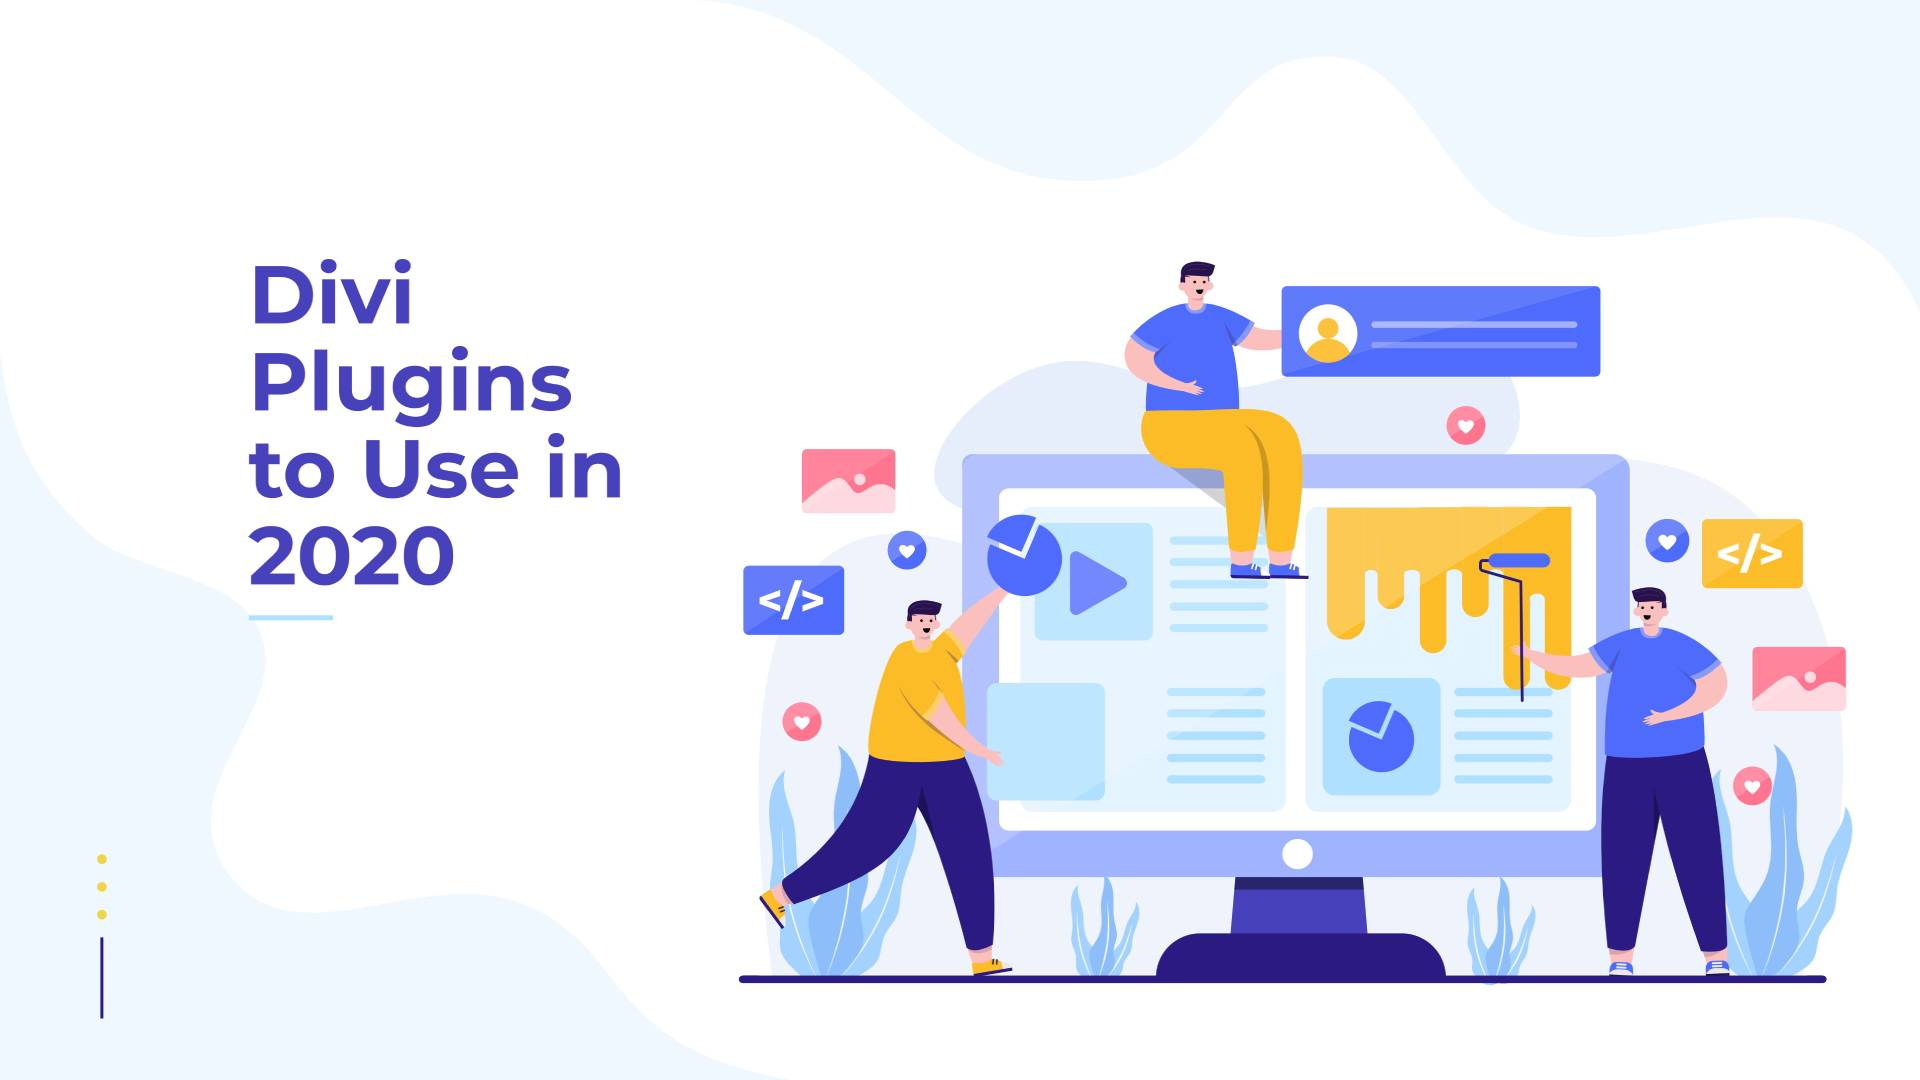 Free and premium Divi plugins to use